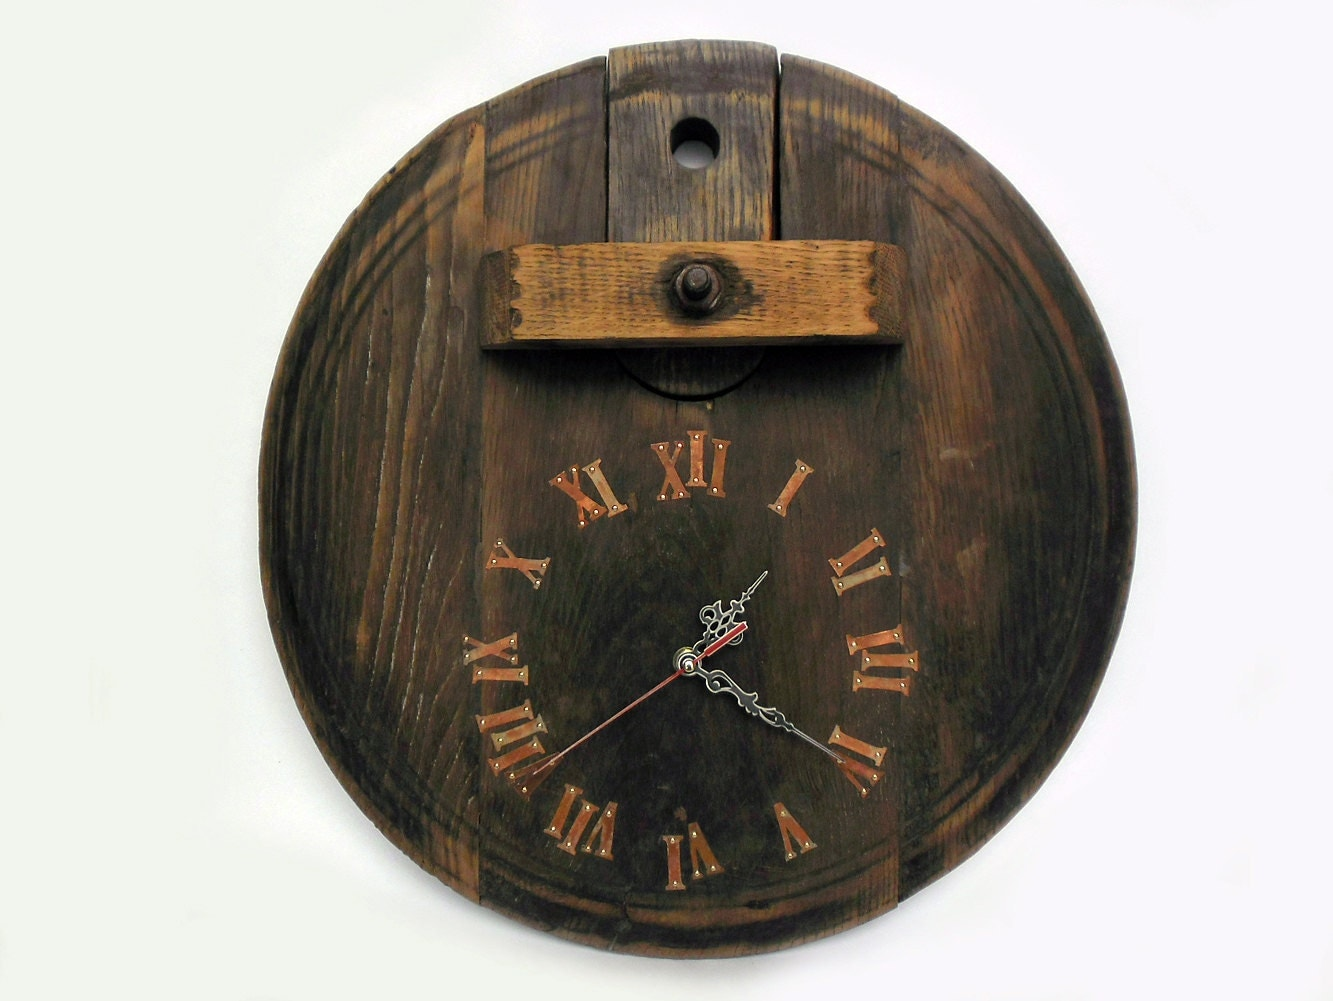 17 39 39 Large Rustic Wall Clock Unique Big By Thirdcloudtotheleft